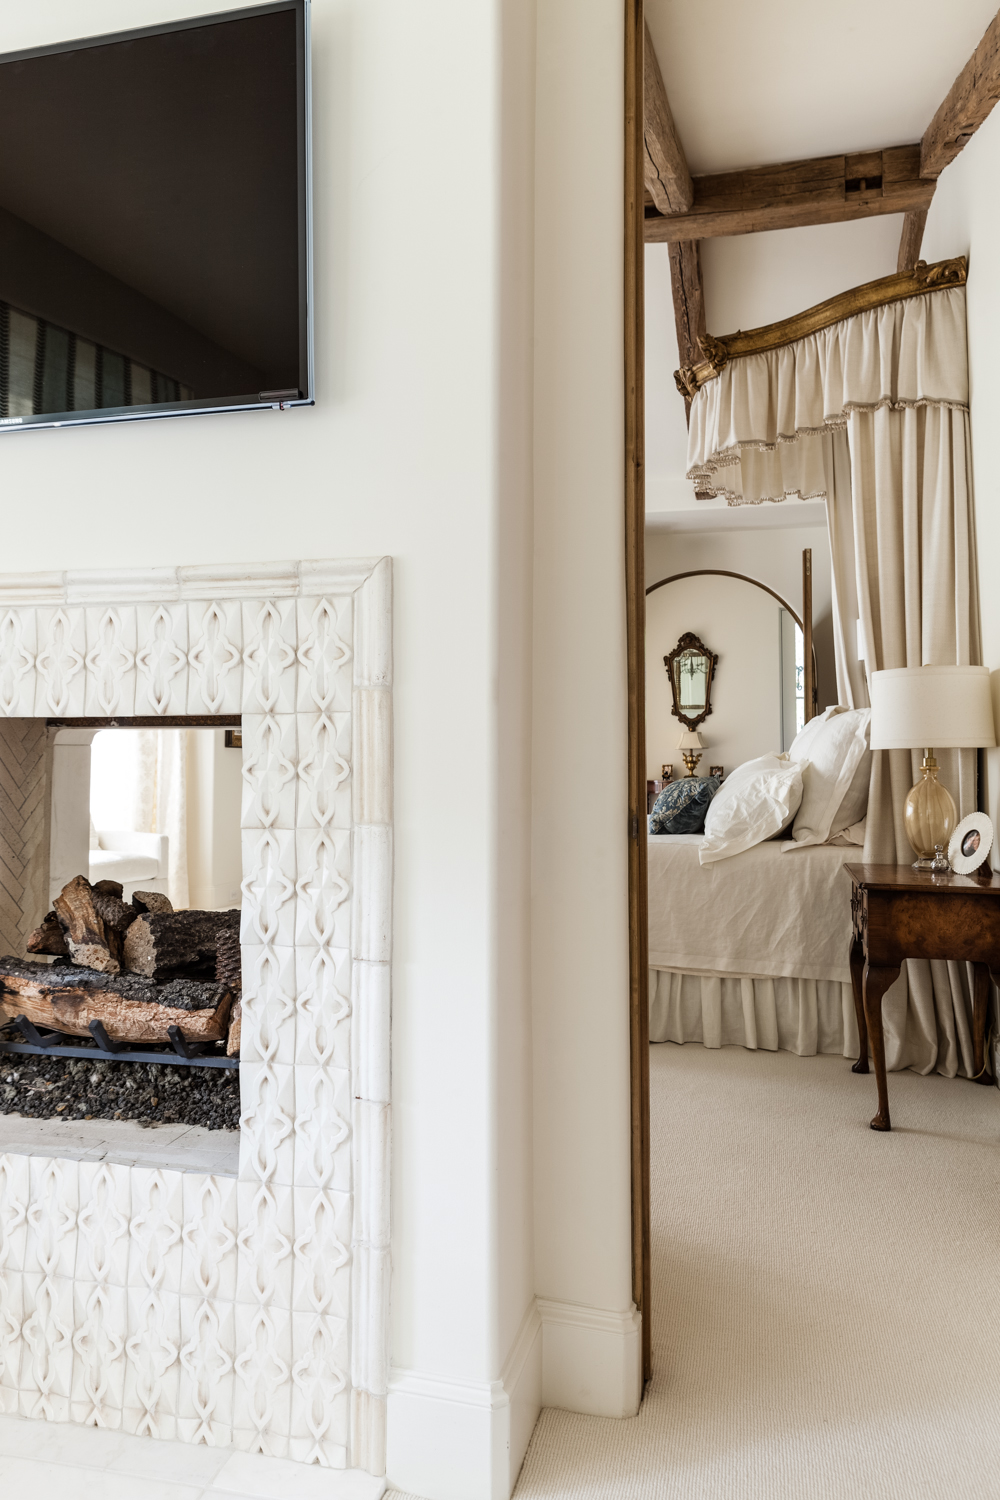 The bedroom fireplace is a pass-through model, enjoyed from both sides of the wall.